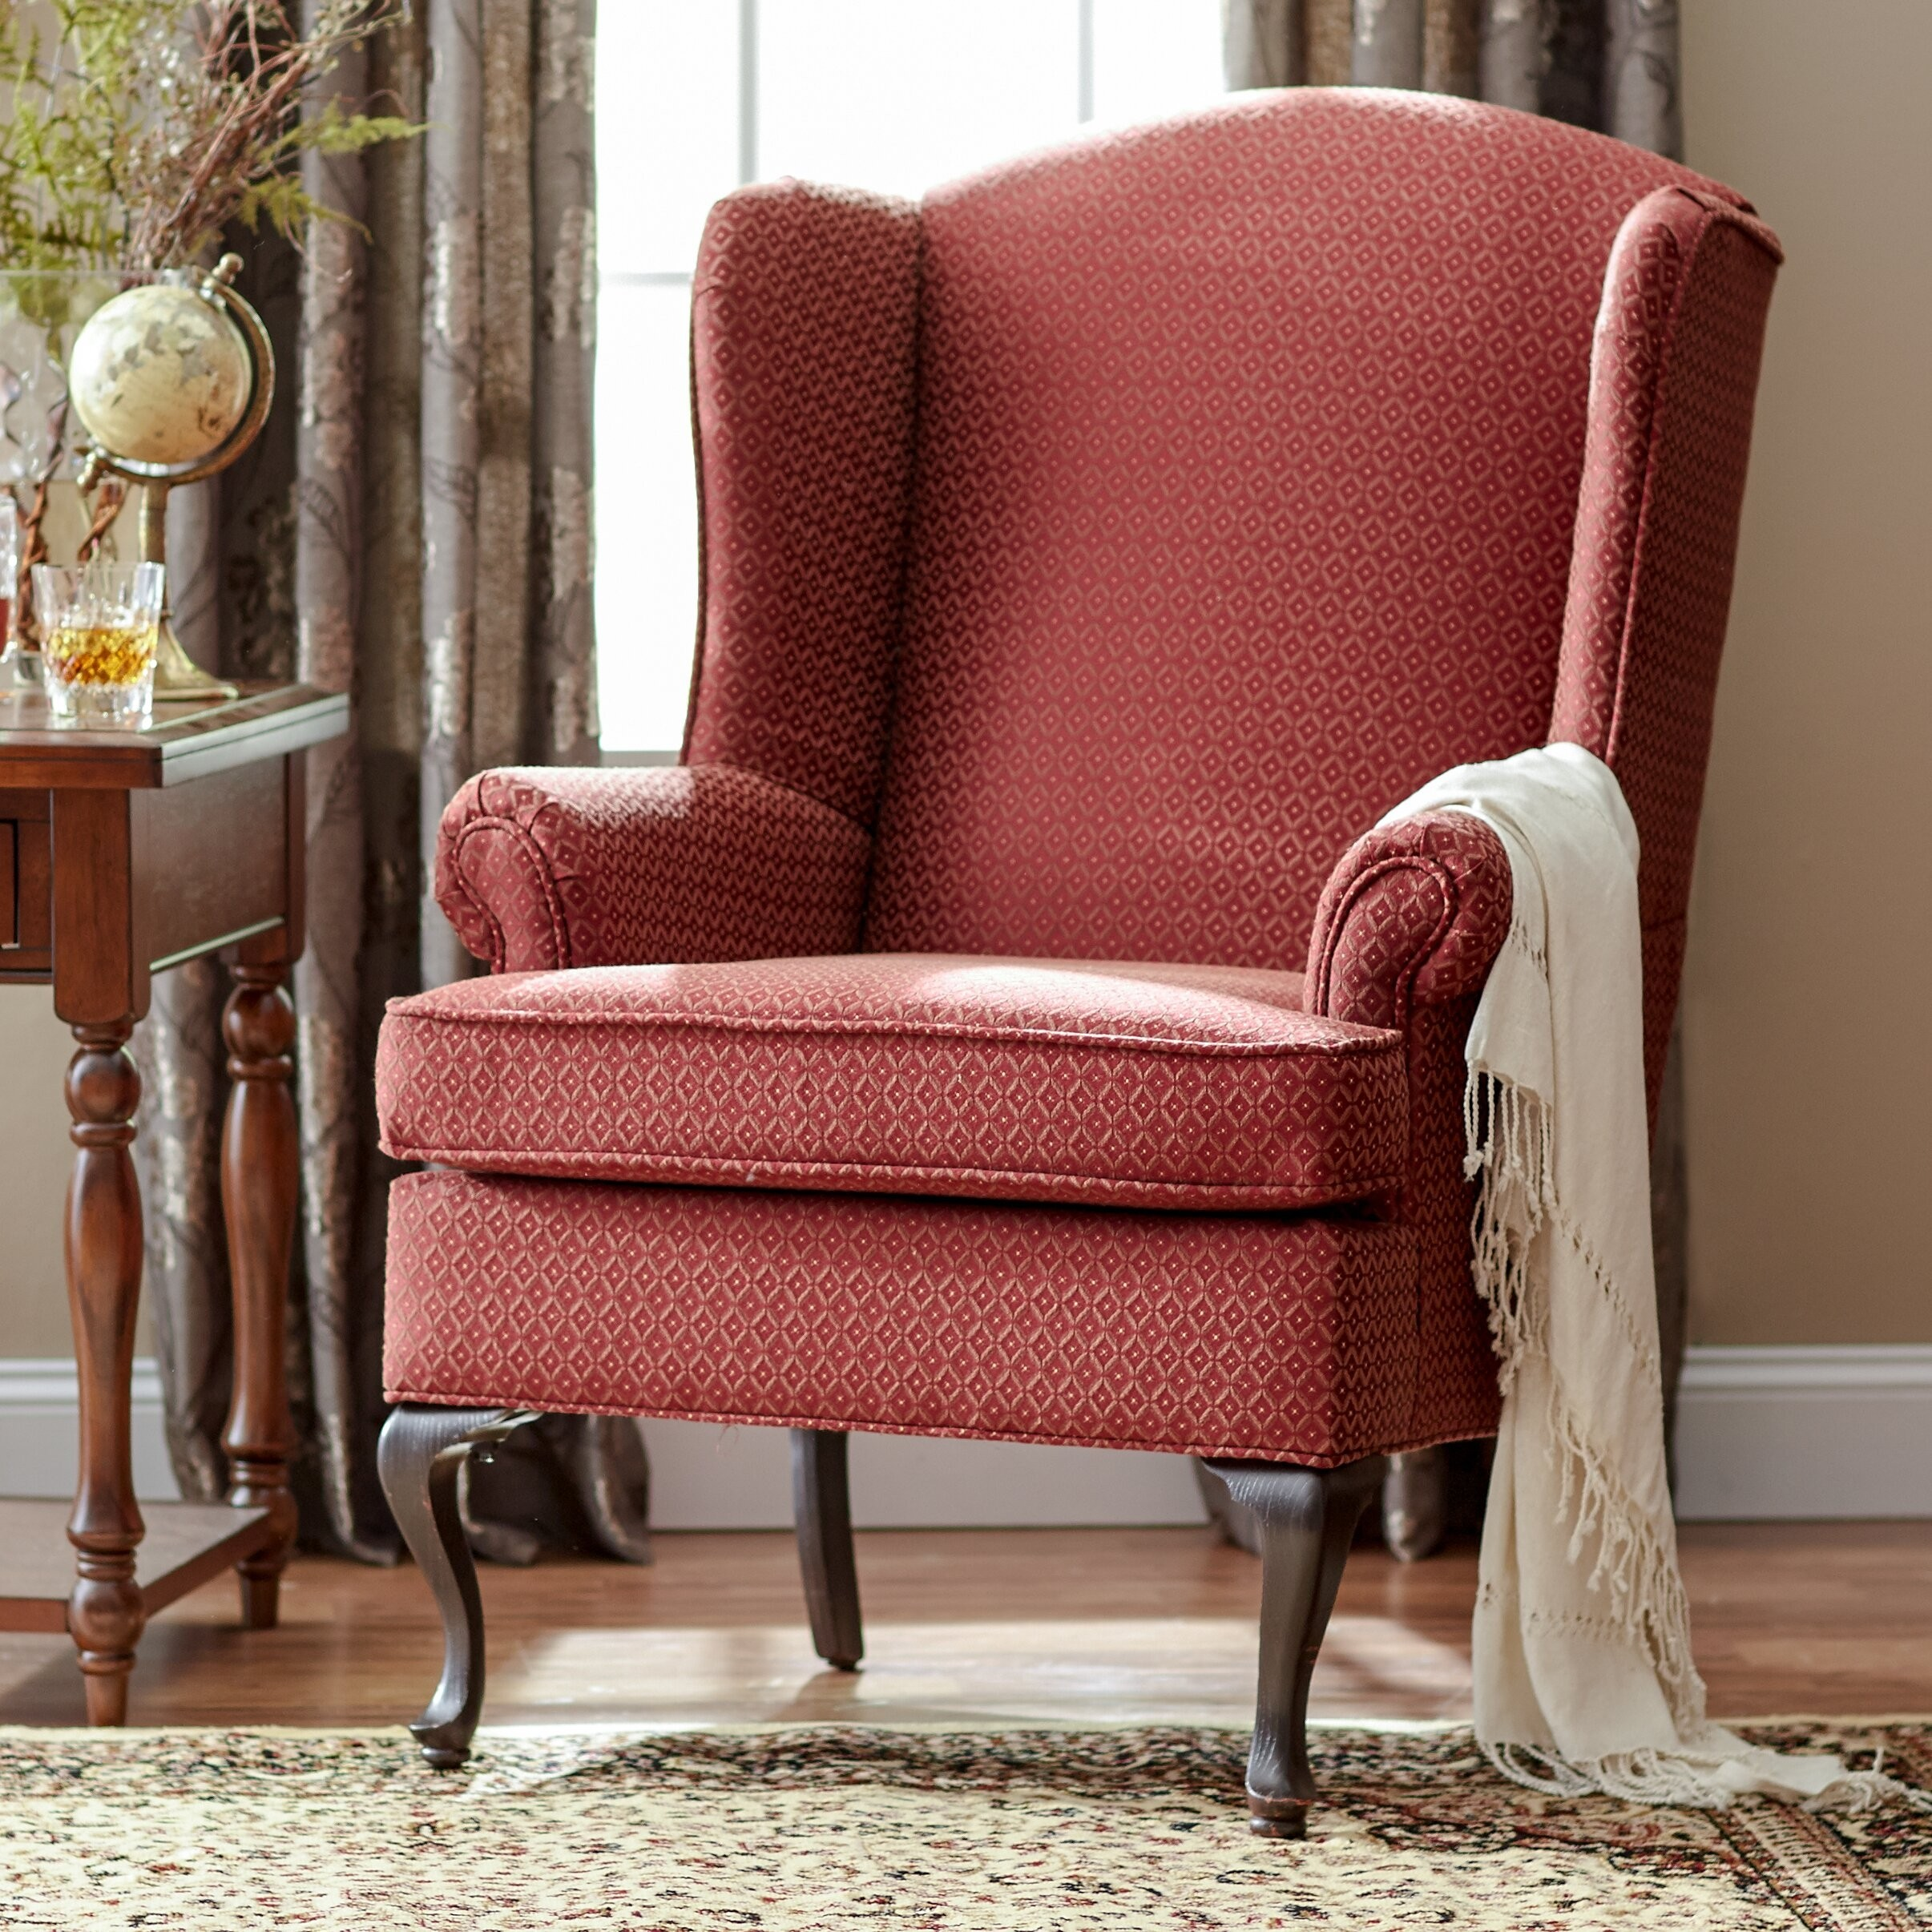 Gentil Damask Wingback Chair By Serta Upholstery